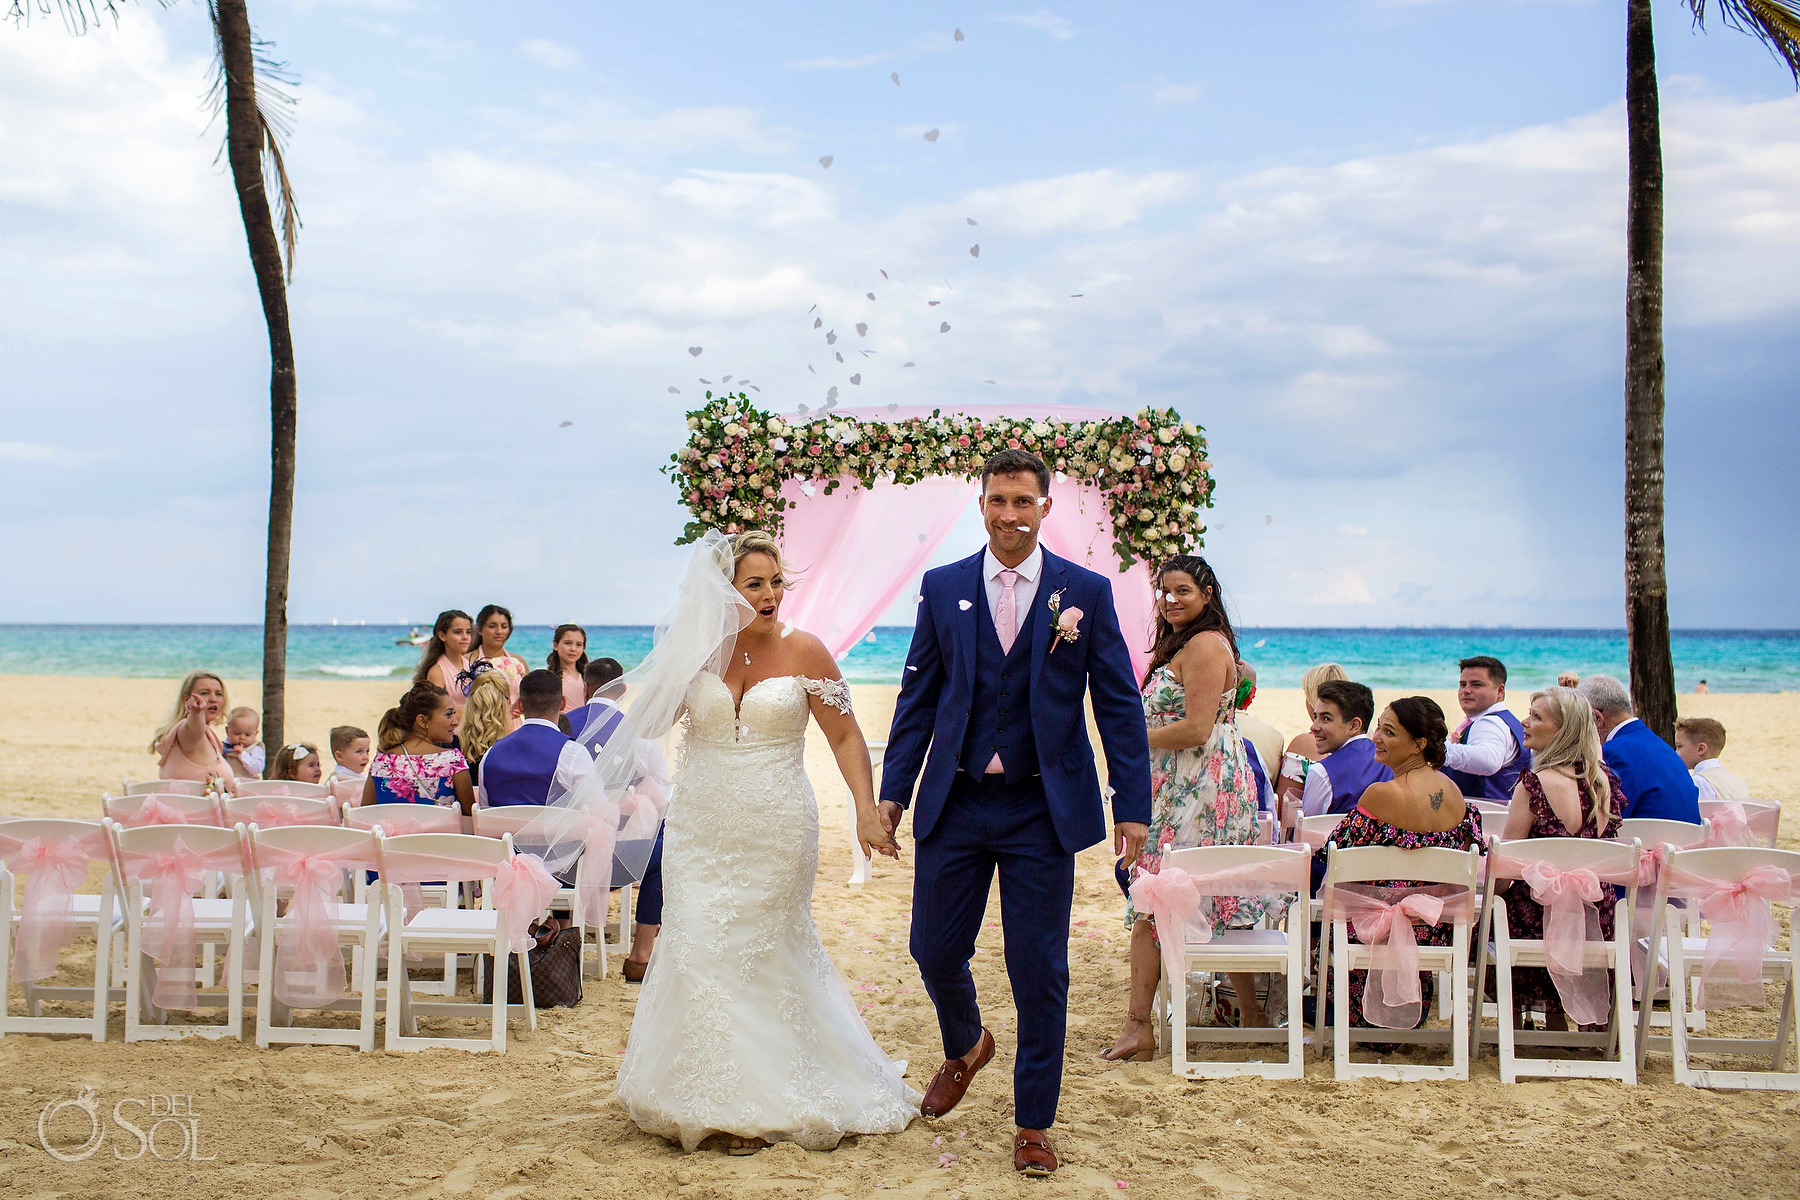 Just Married Petals Confetti Riu Palace Mexico Wedding Photographer